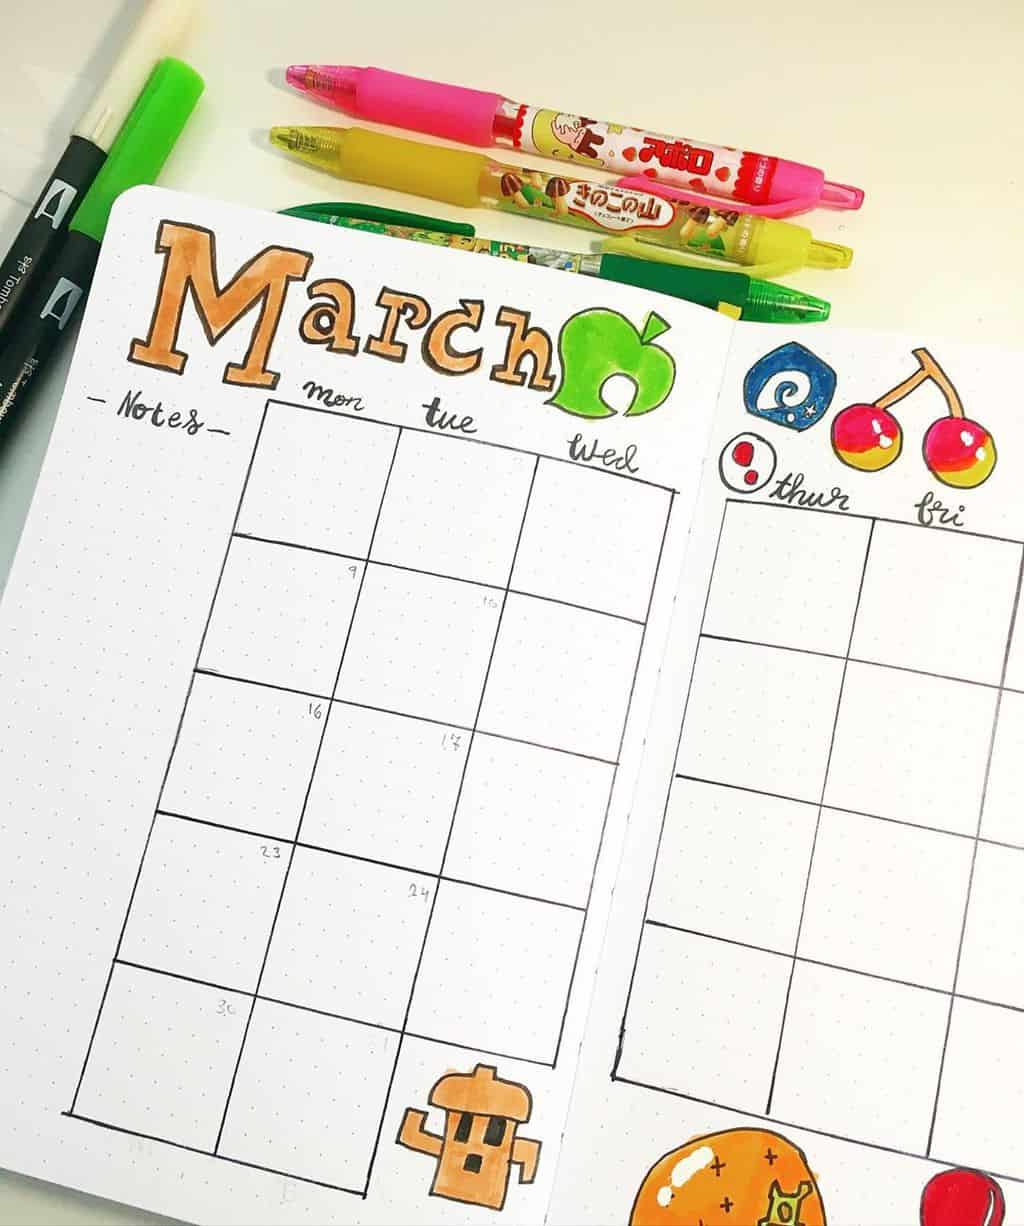 Animal Crossing Bullet Journal Inspirations - monthly log by @bobas_bujo | Masha Plans